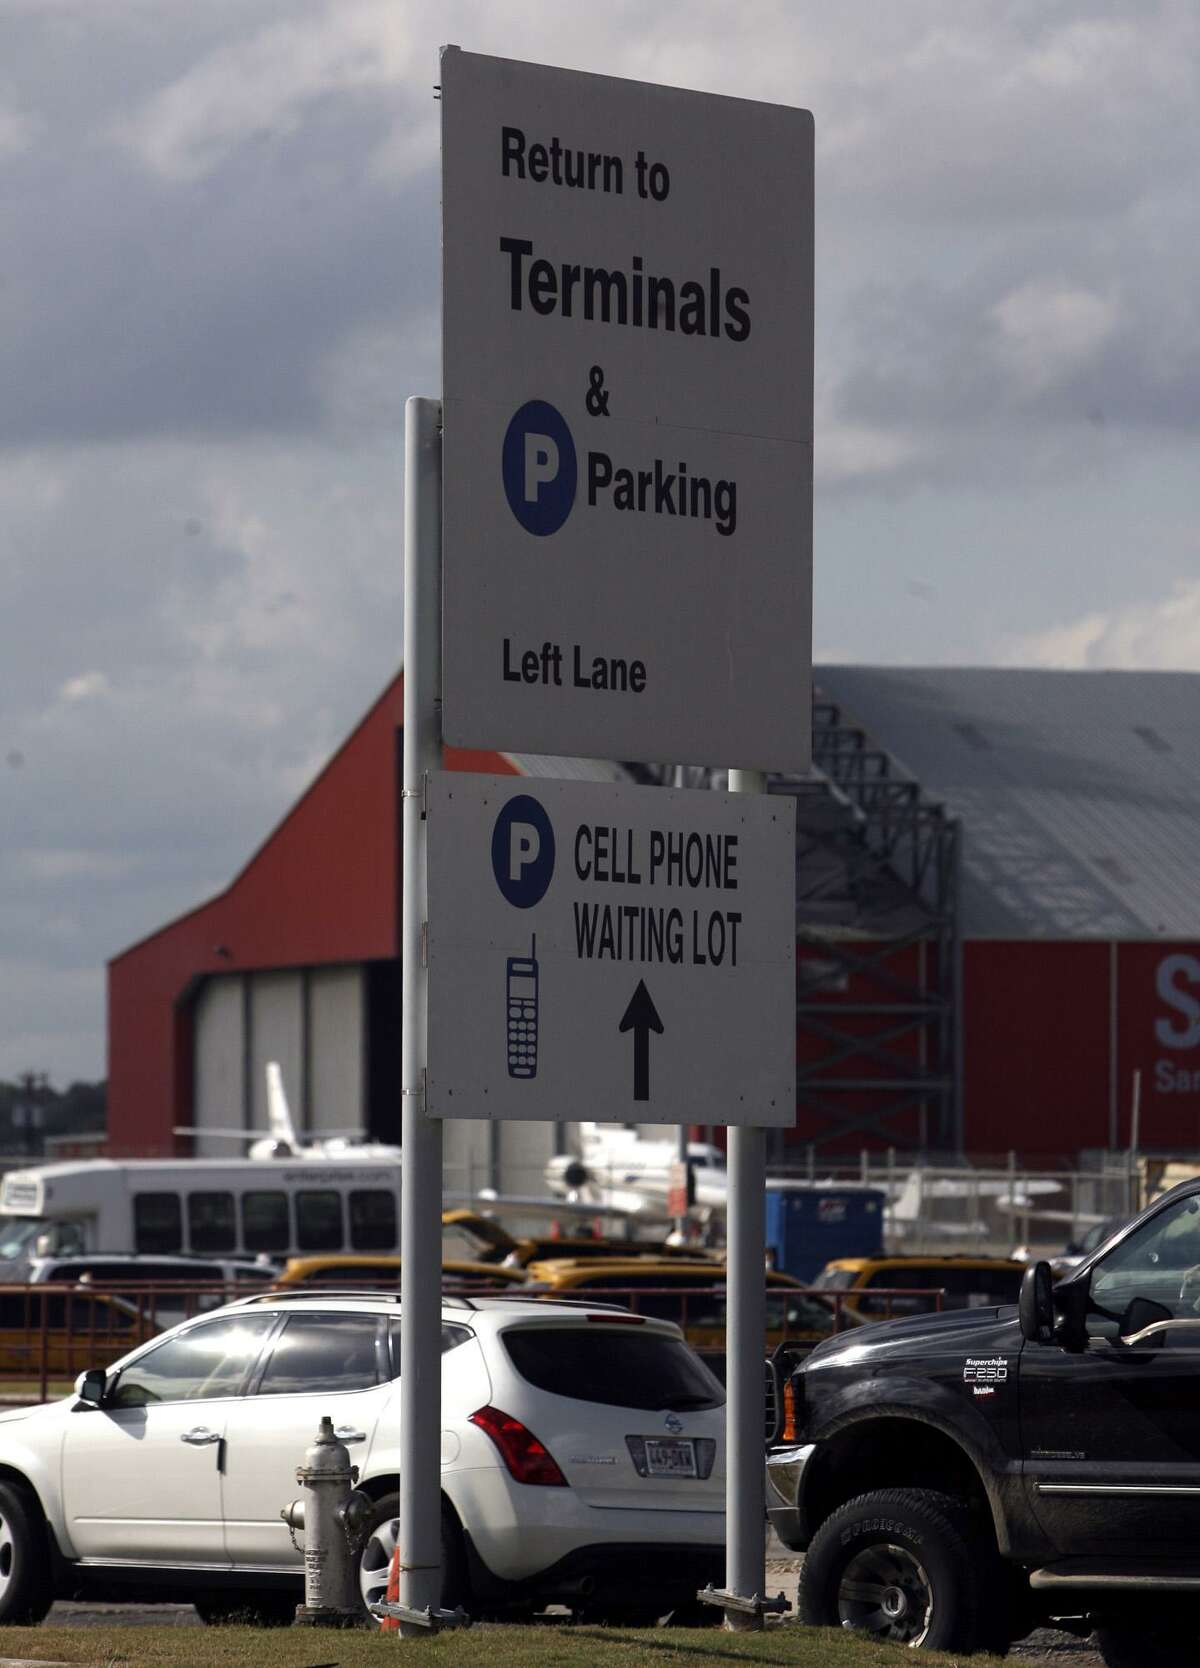 The free cellphone waiting lot at the San Antonio airport came at a price for one reader.